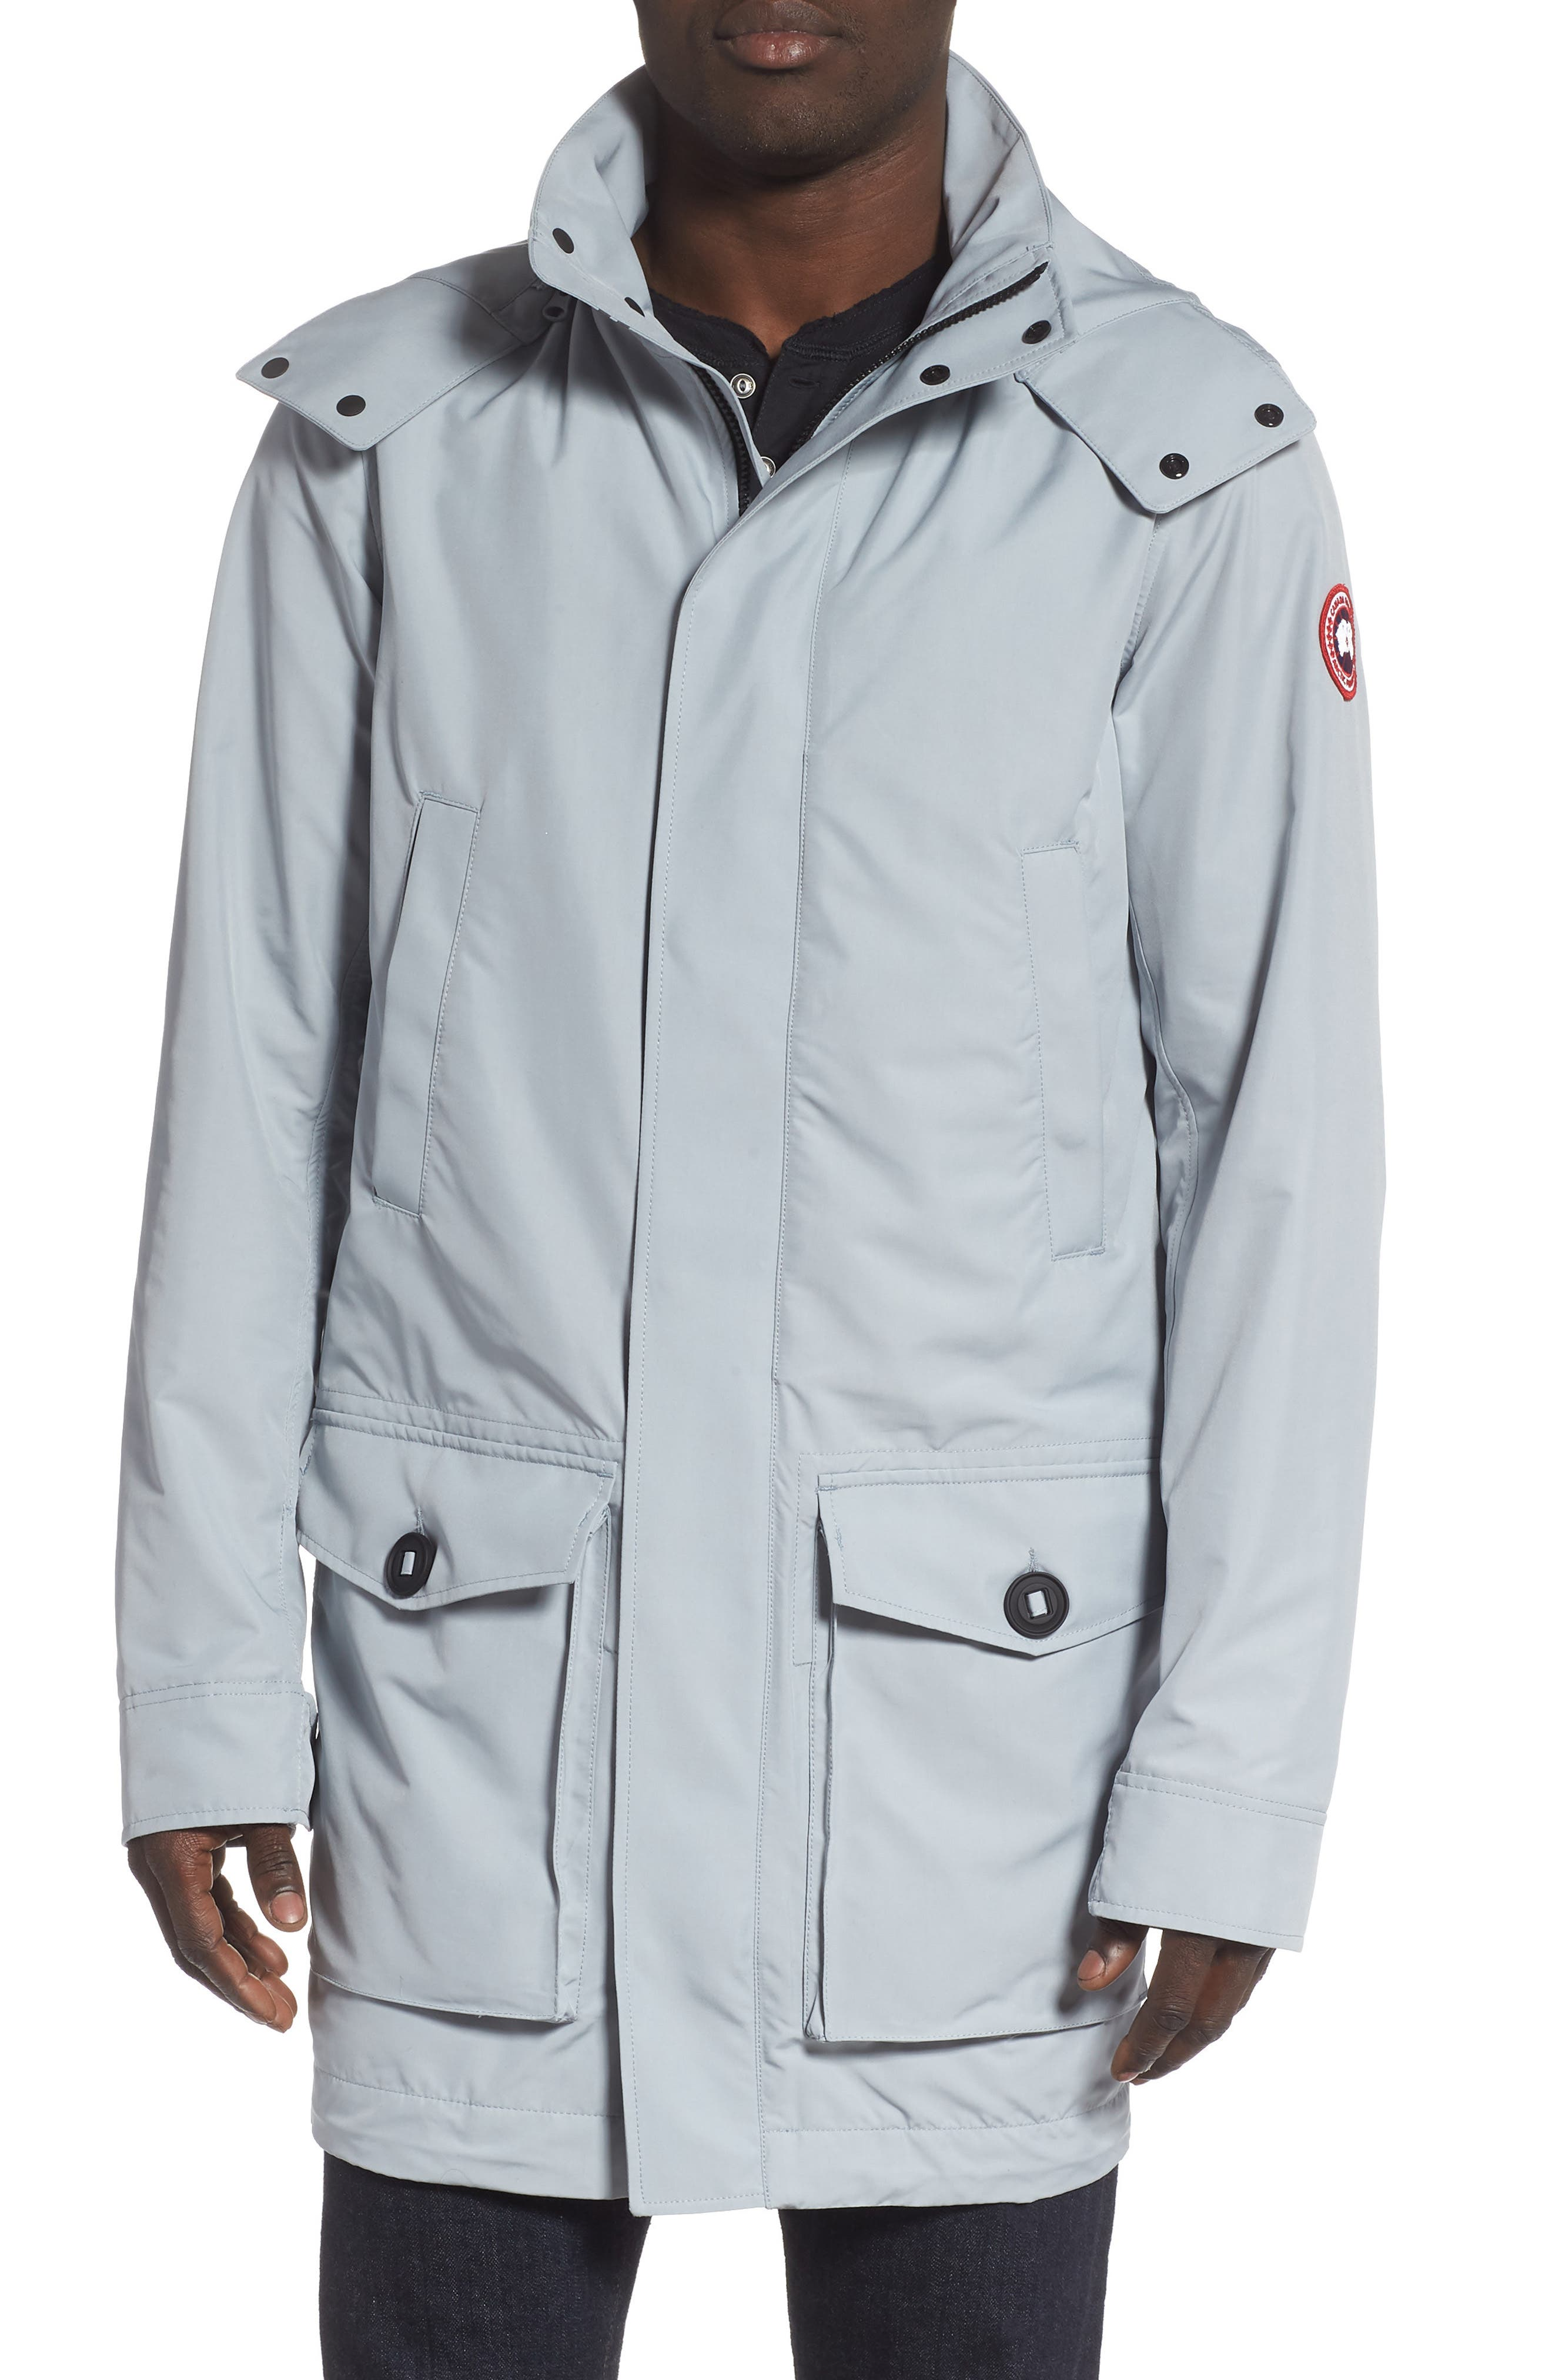 Canada Goose Crew Trench Jacket With Removable Hood, Grey